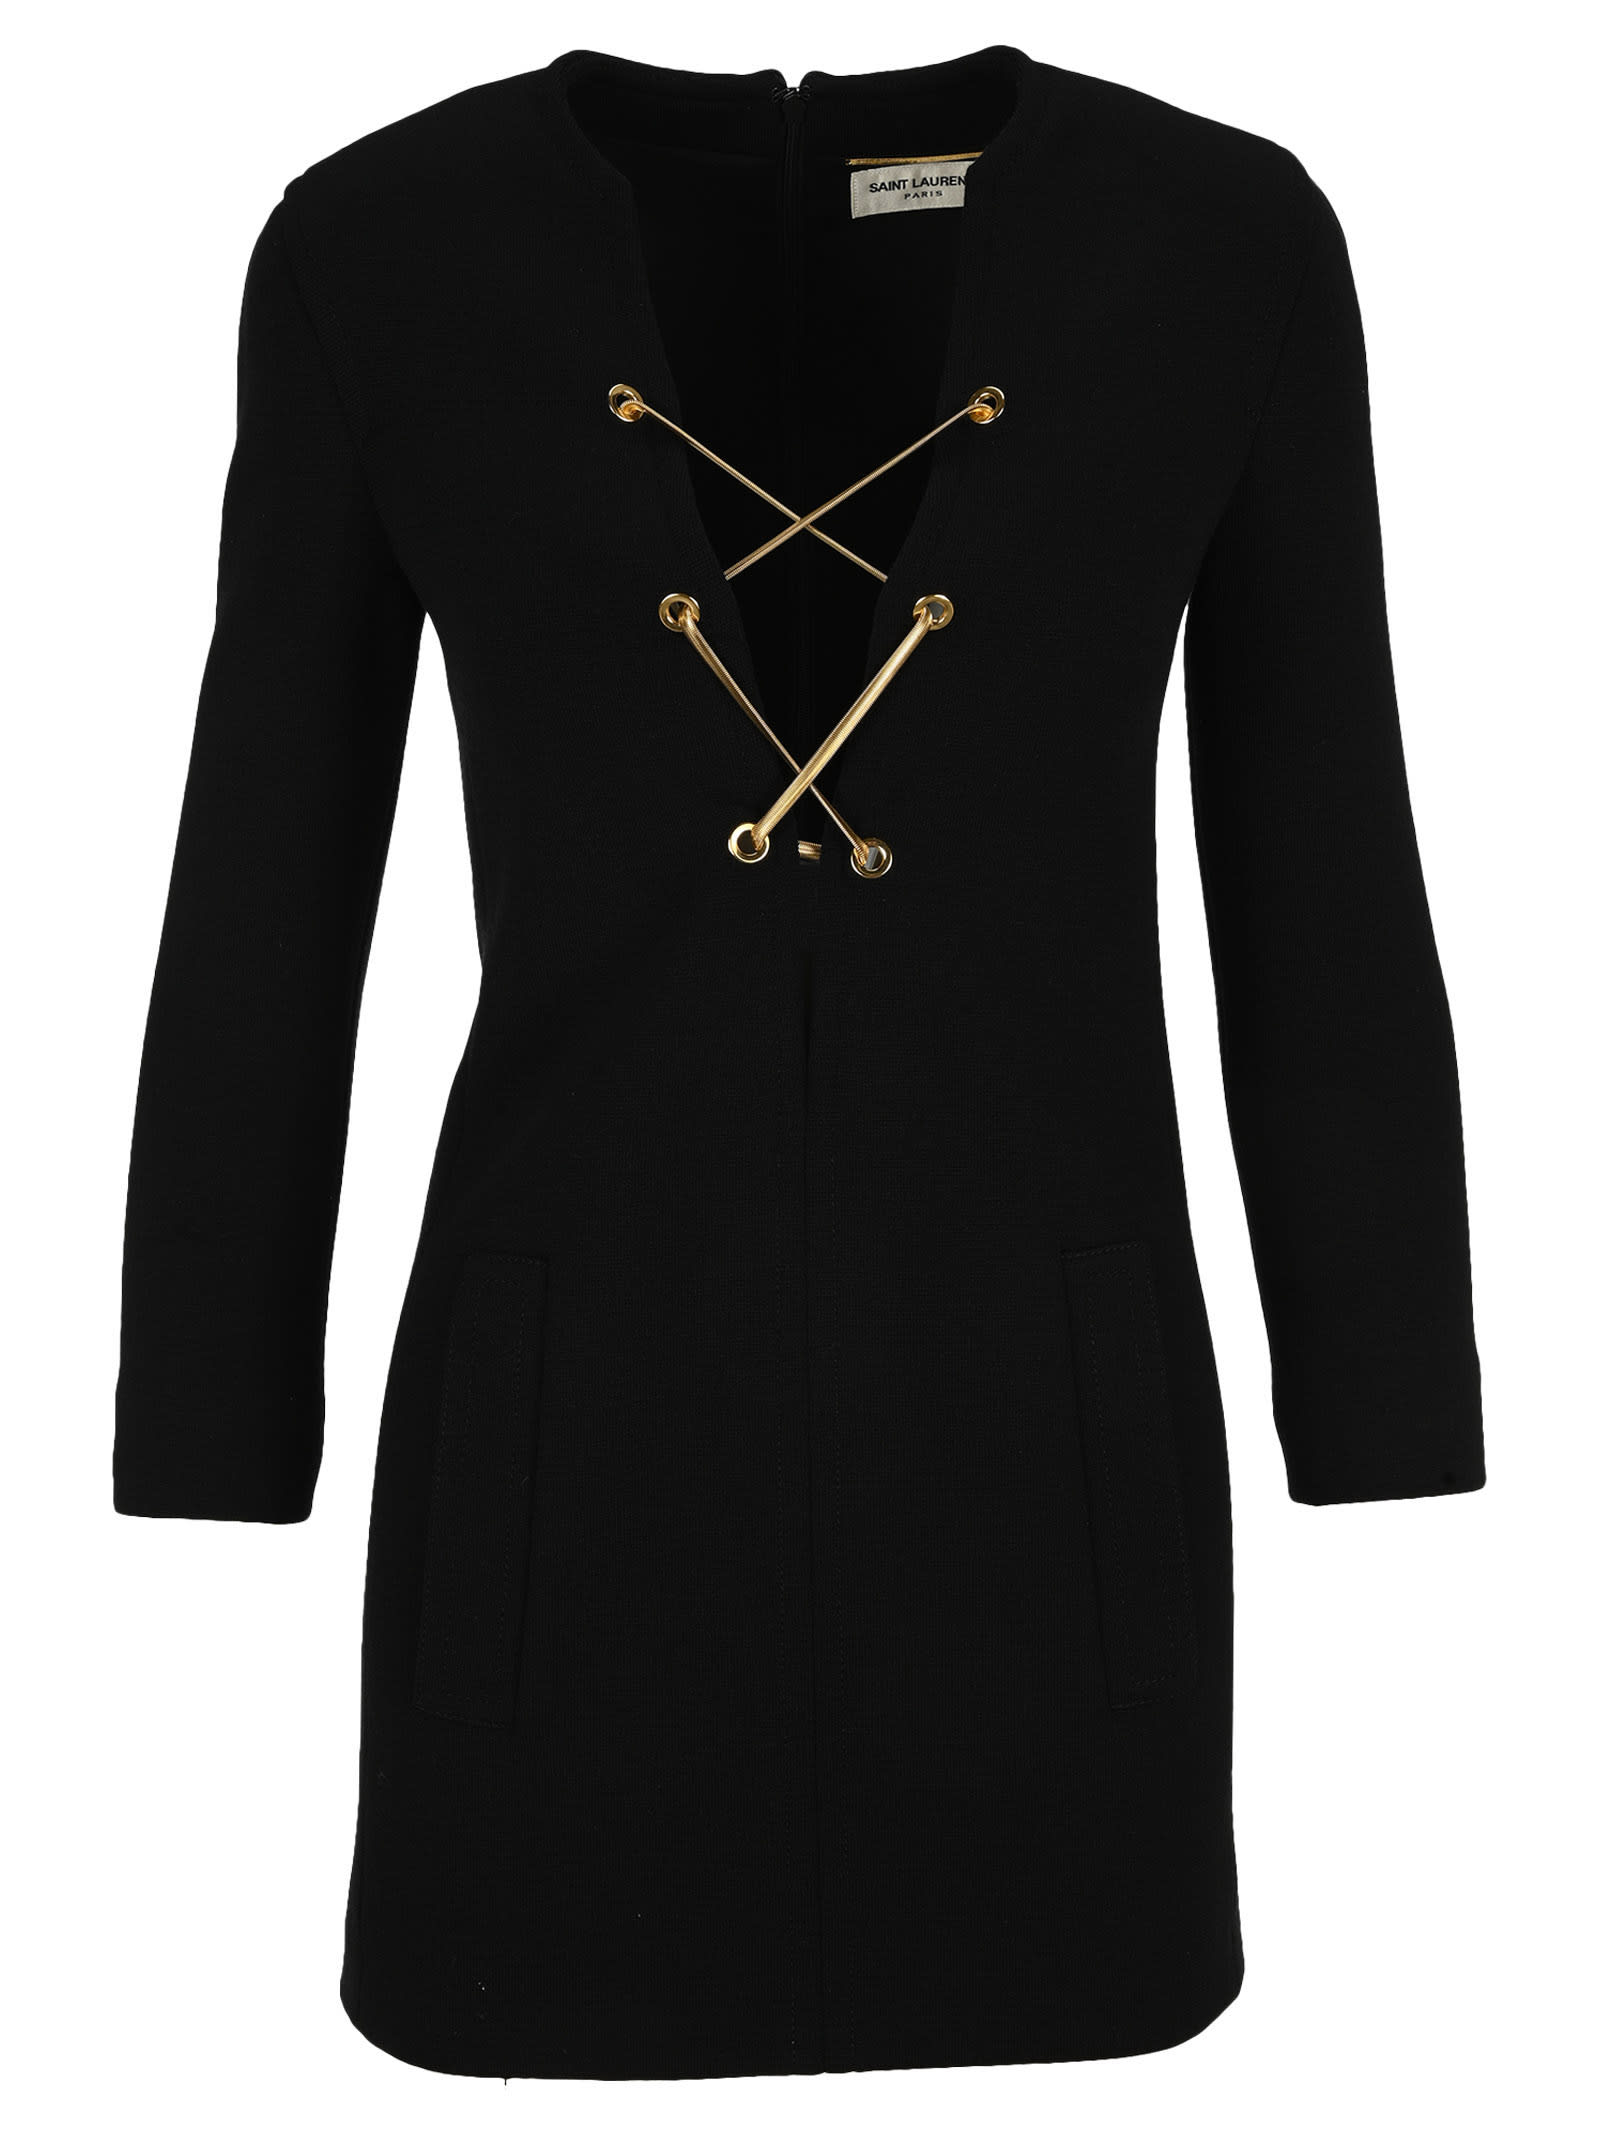 Buy Saint Laurent Lace Up Mini Dress In Wool Jersey online, shop Saint Laurent with free shipping